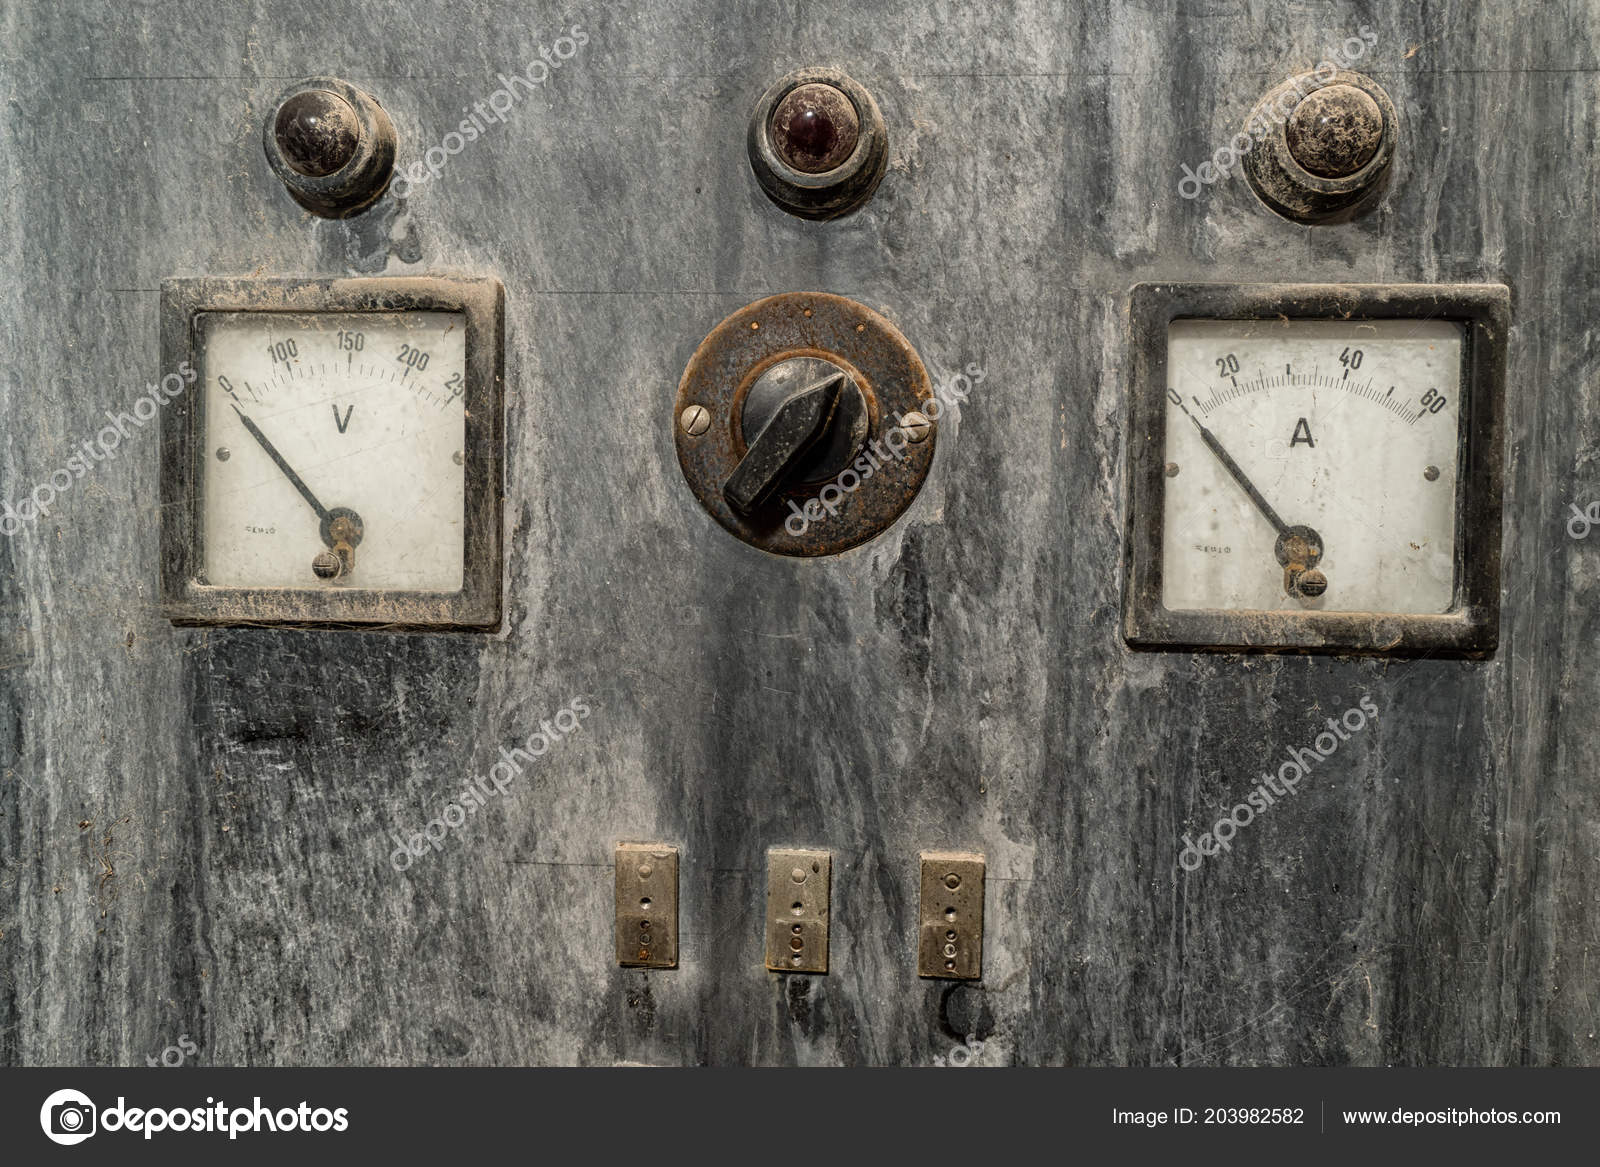 Vintage Volt and Ampere Meter with lights and switches in rusty cabinet u2014 Stock Photo & Vintage Volt and Ampere Meter with lights and switches in rusty ...